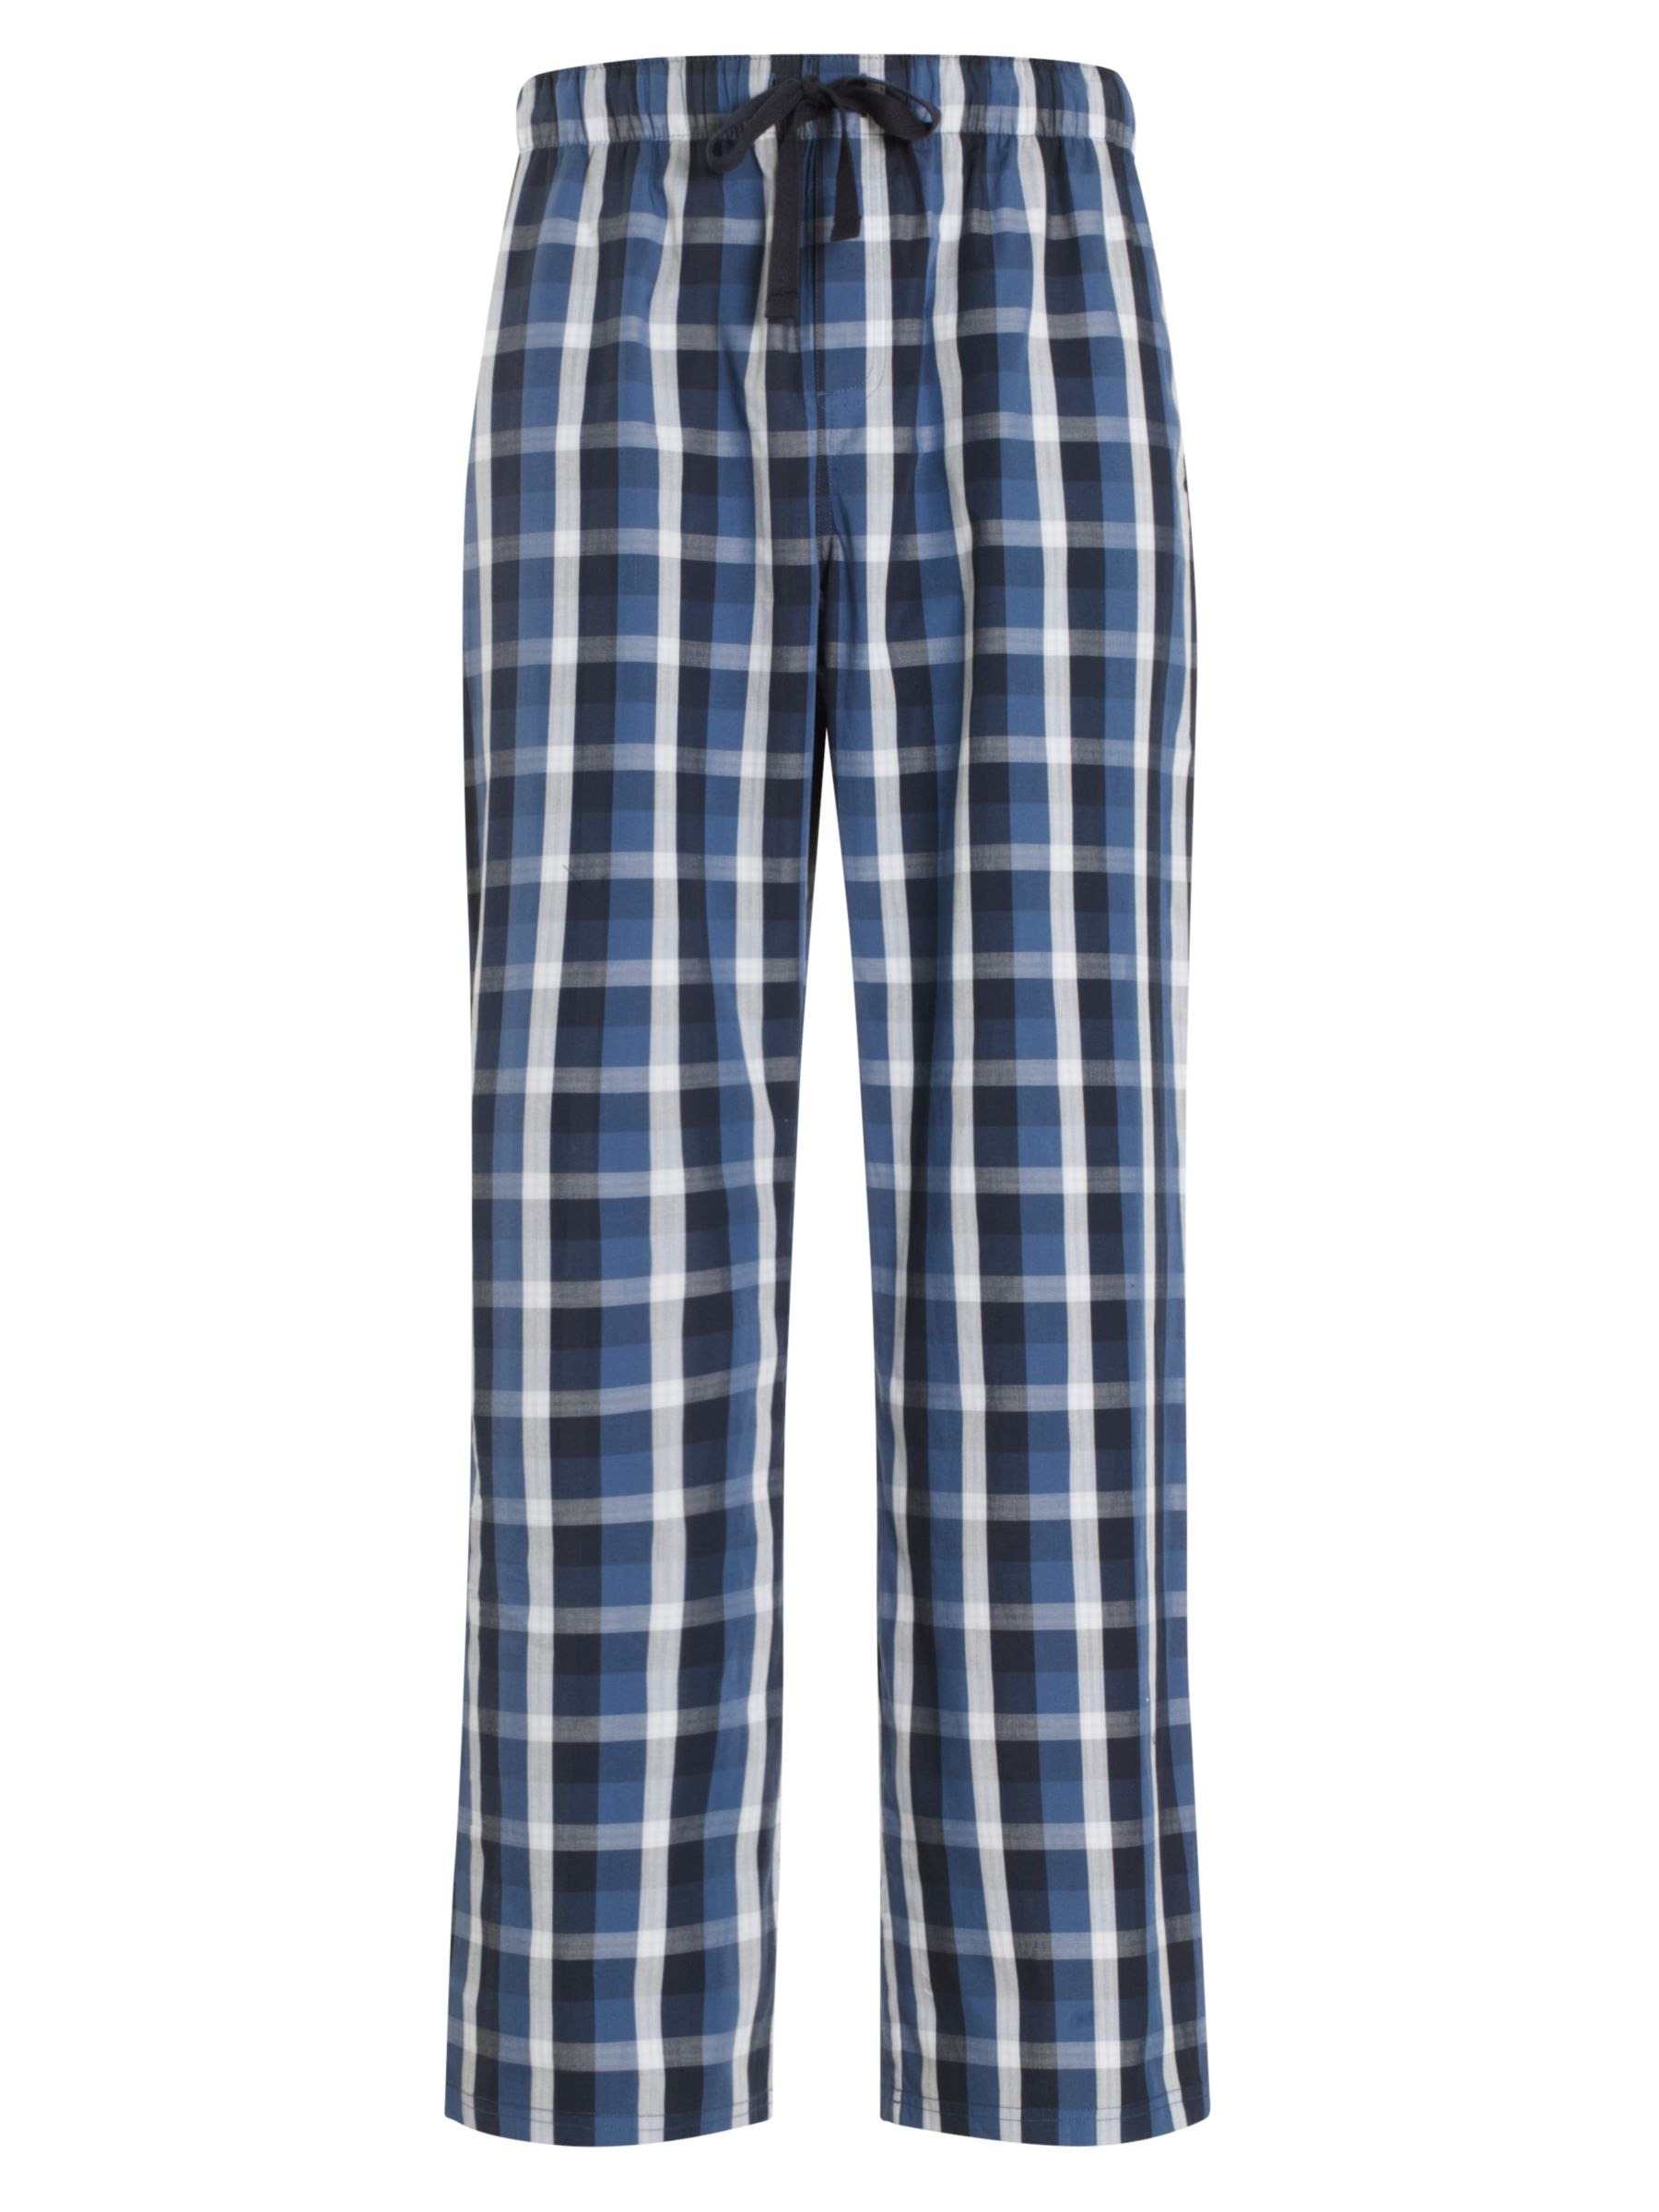 John Lewis Check Cotton Lounge Pants